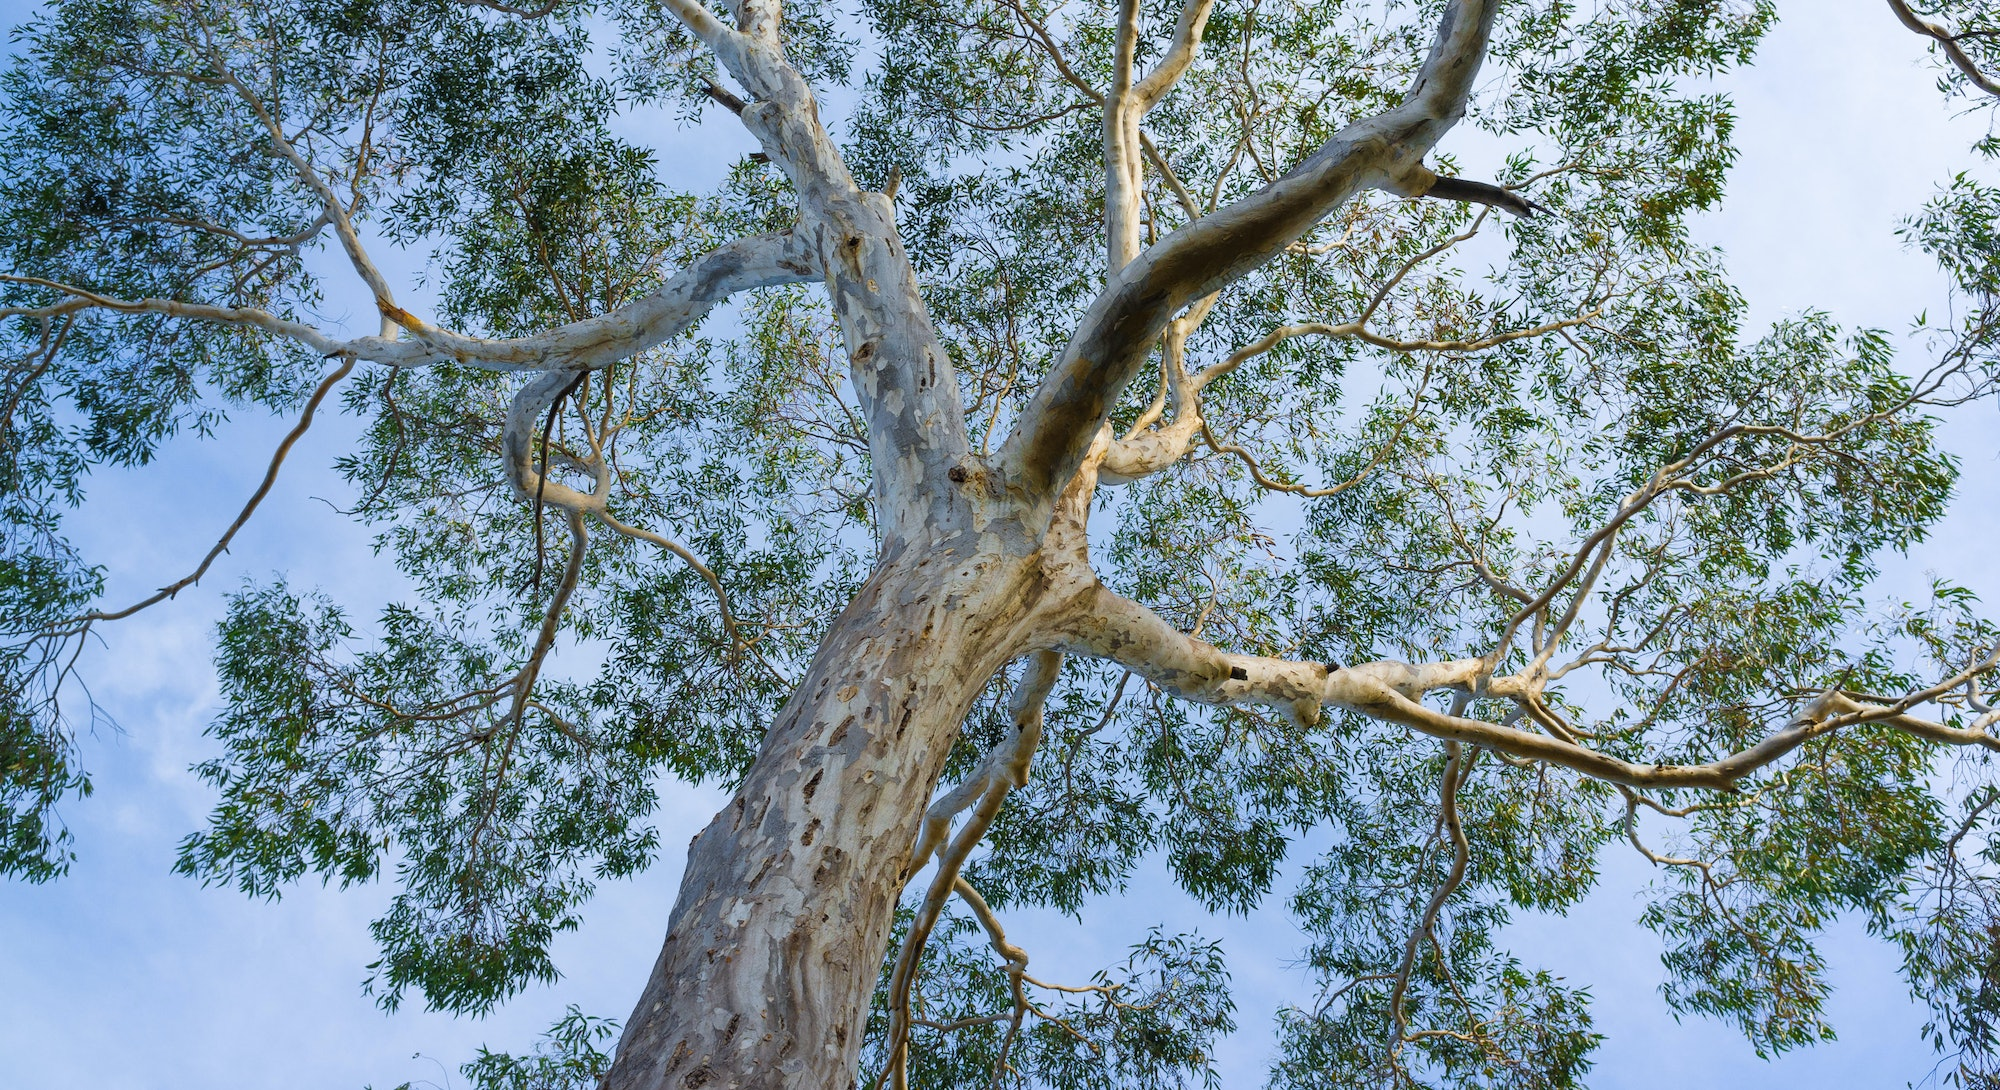 Canopy of big Australian Eucalyptus tree looking up at the sky